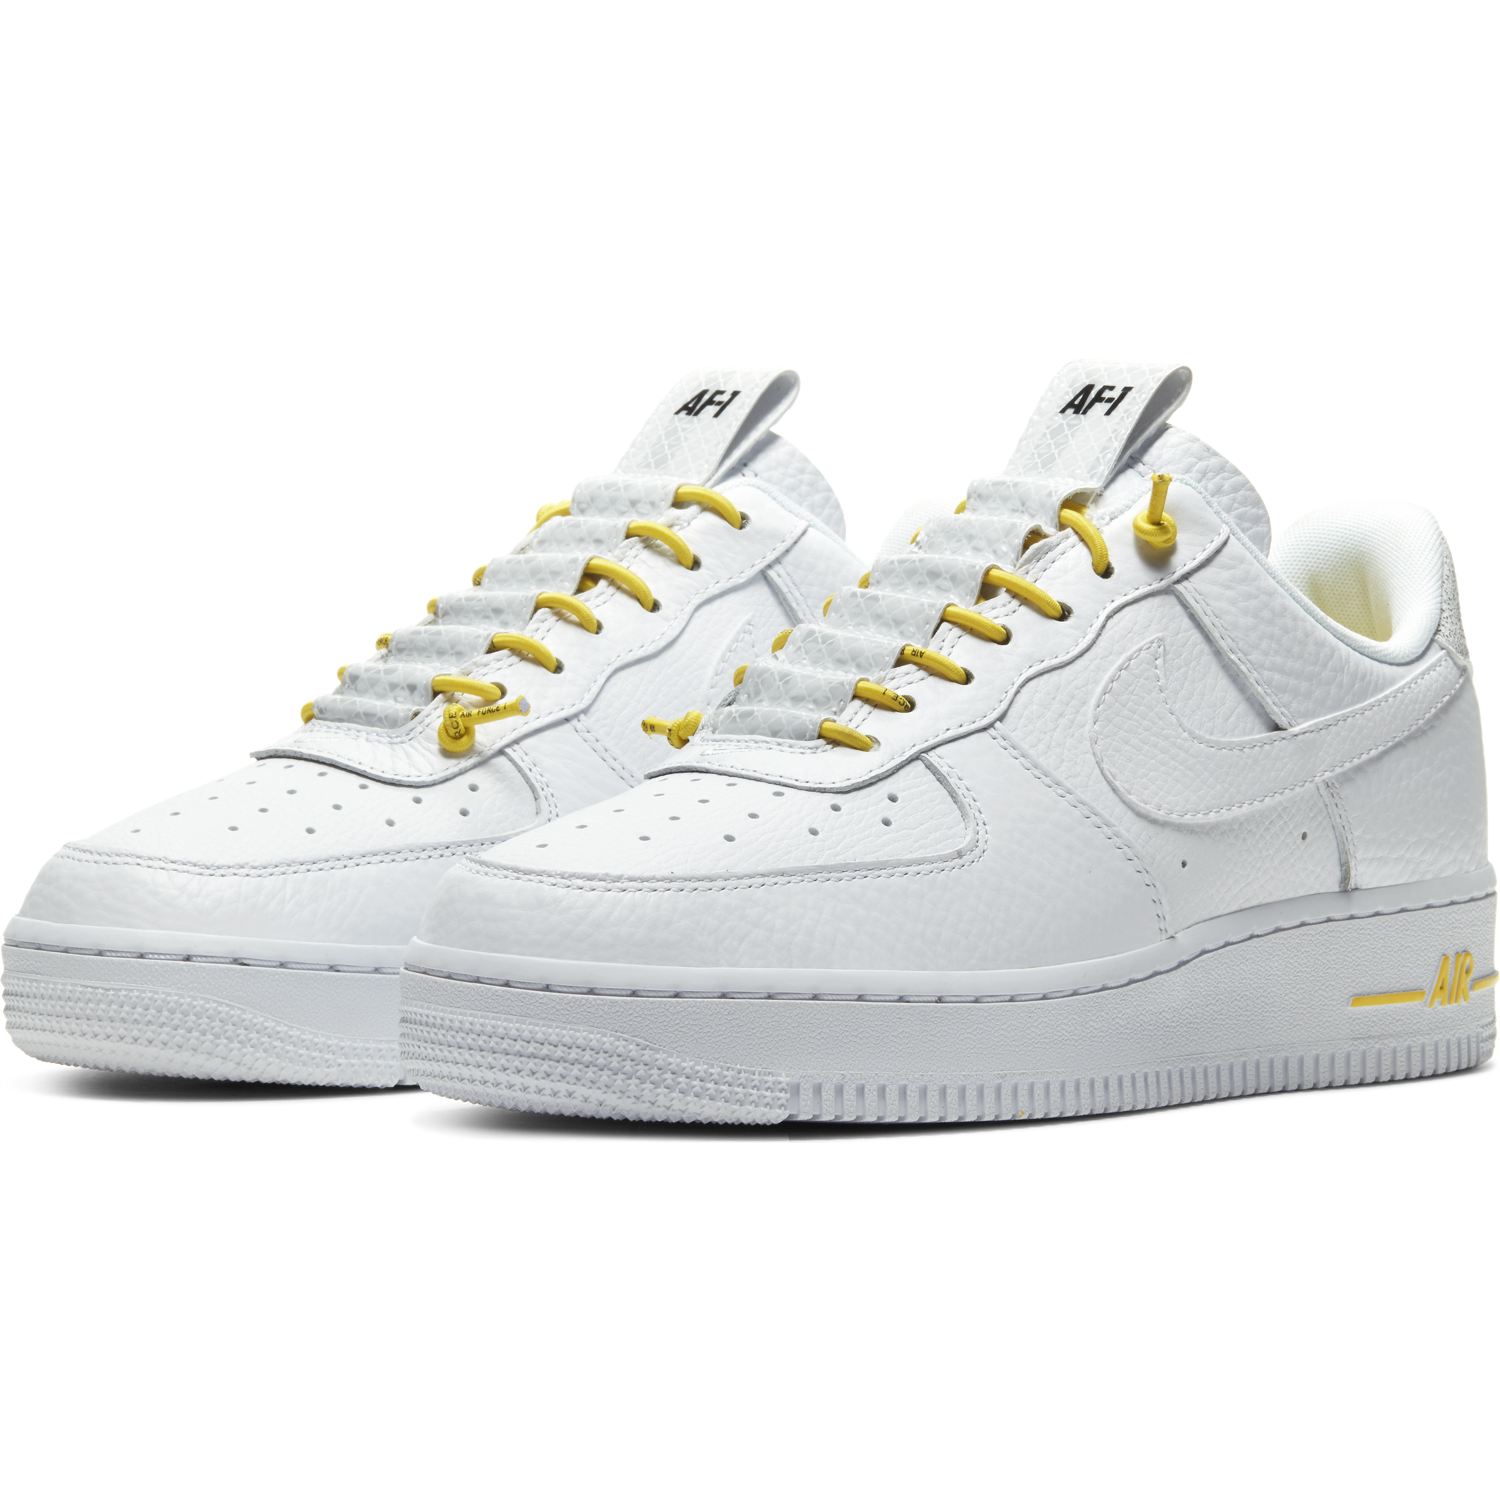 Buty Nike WMNS AIR FORCE 1 '07 LX 898889 200